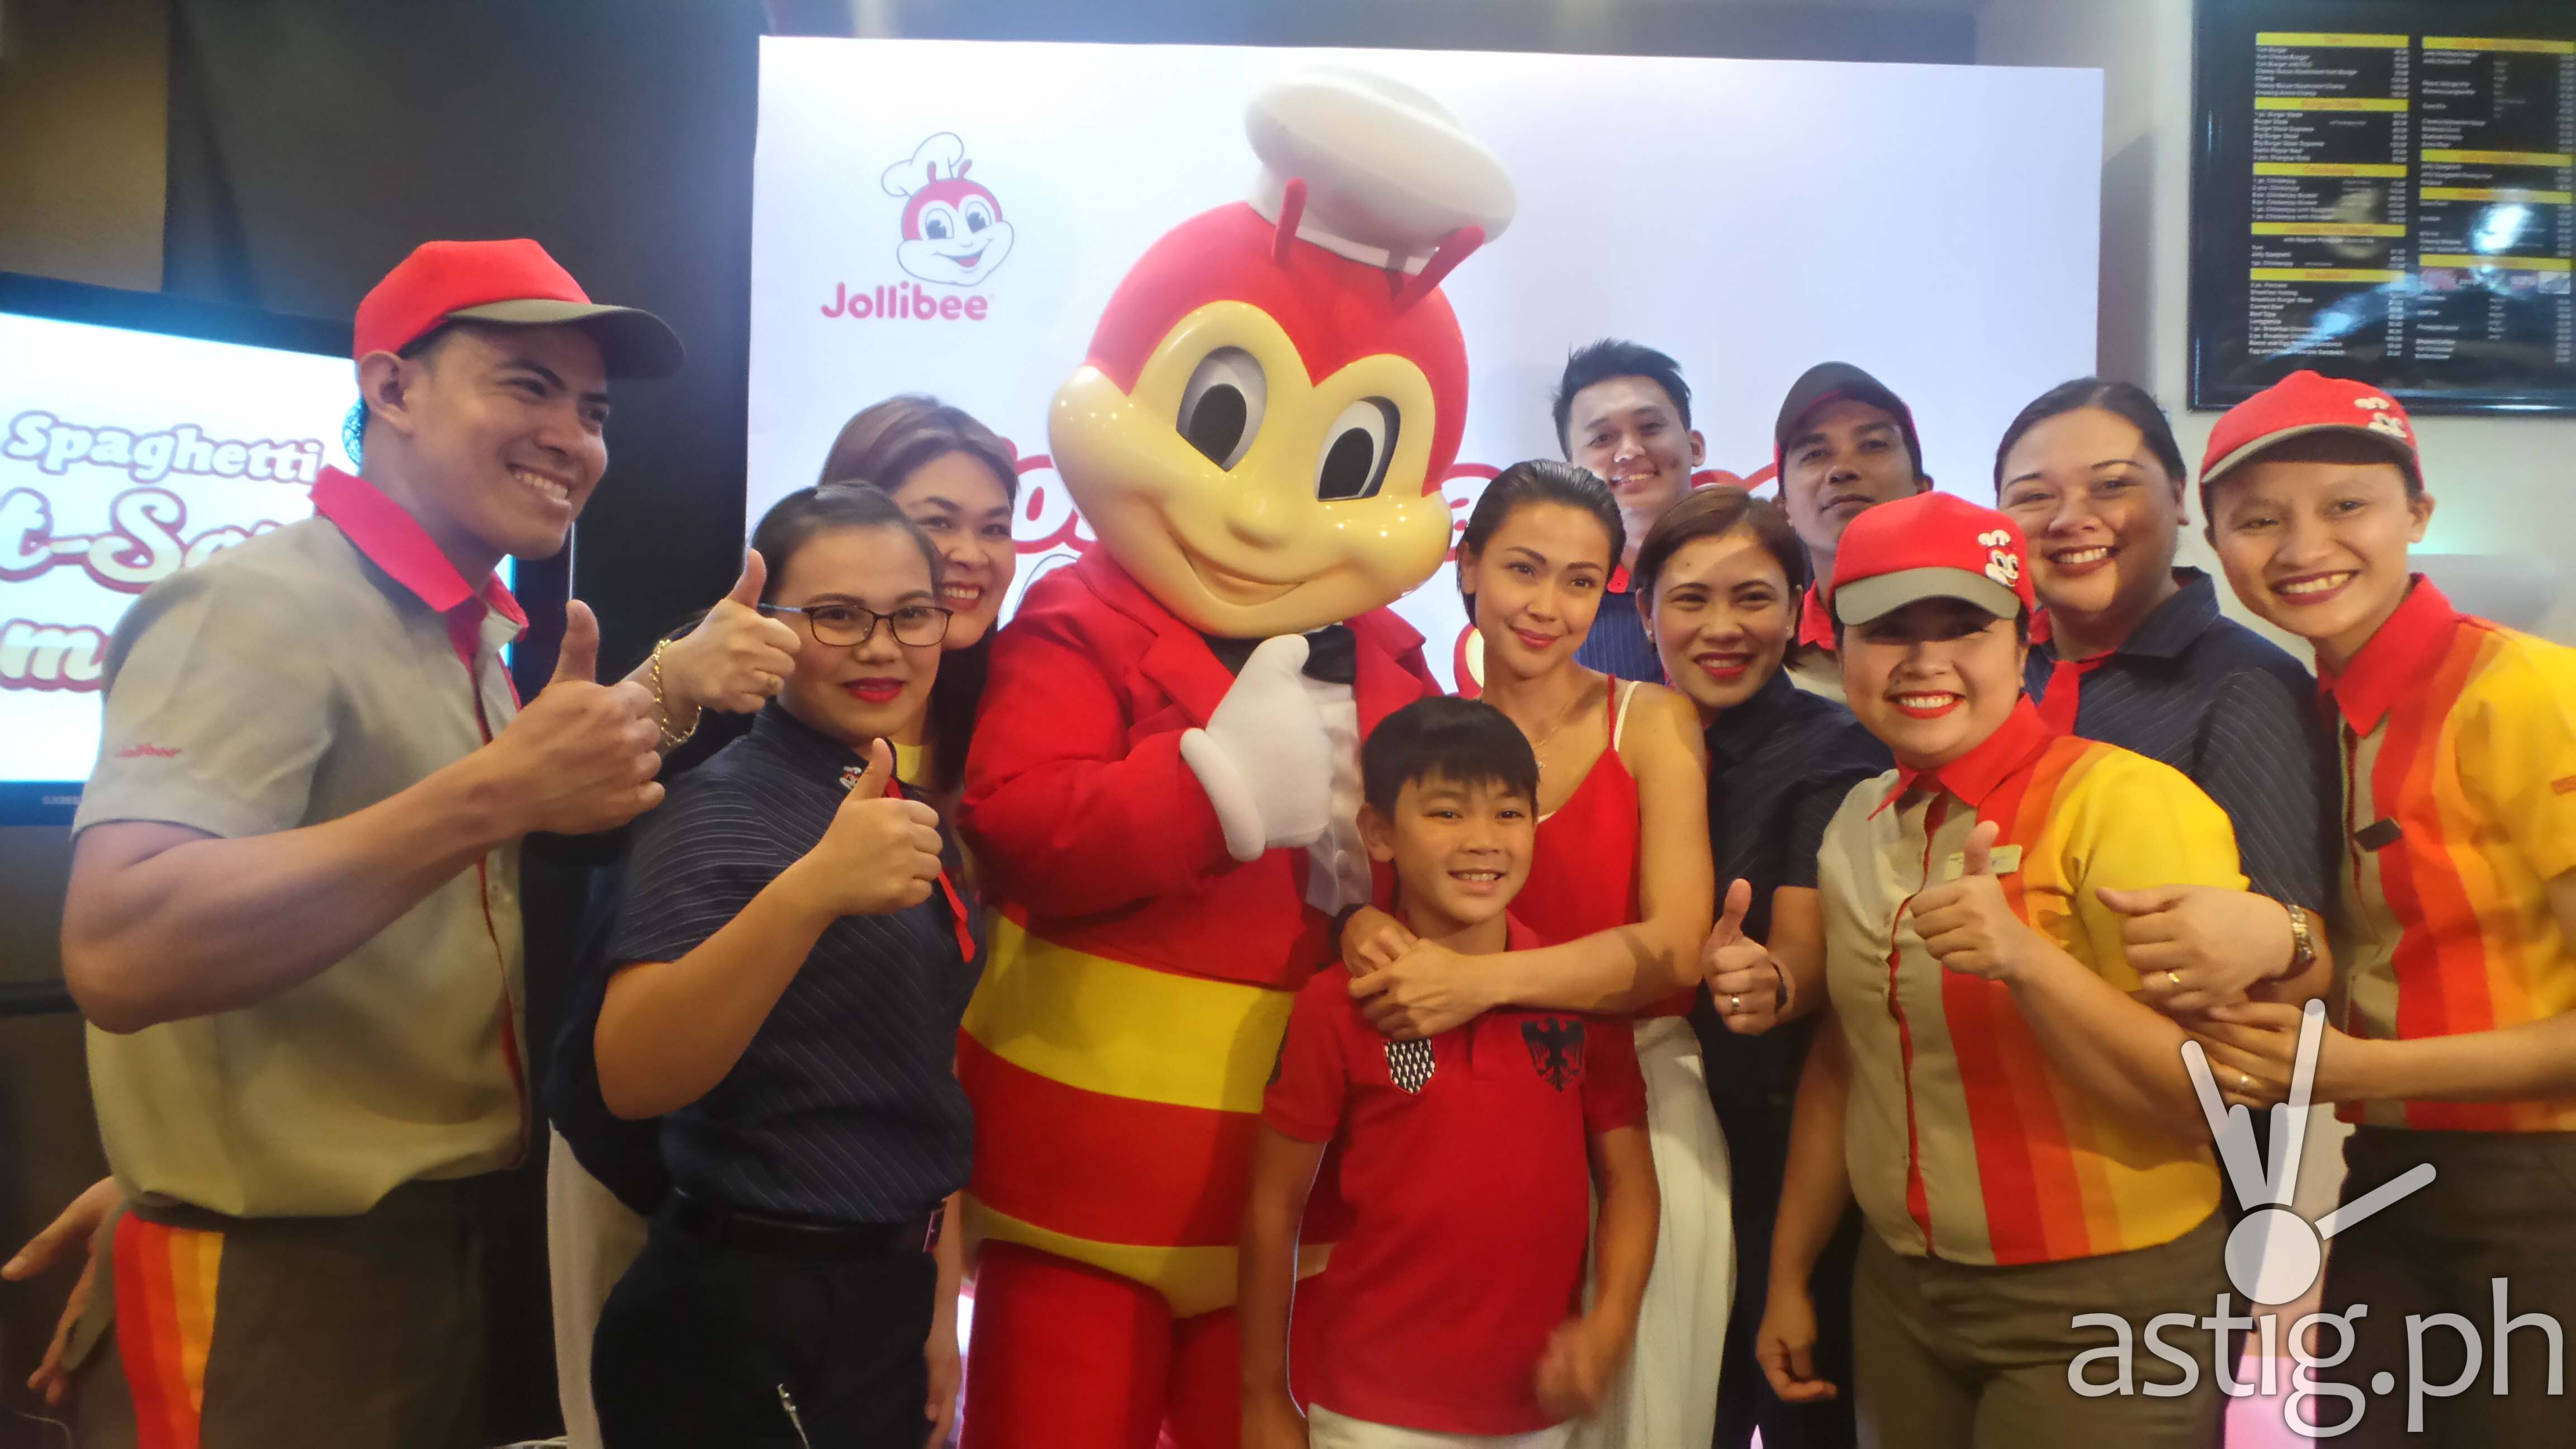 globalization of jollibee Presents interviews with ceo tony tan caktiong and international division vp,  noli tingzon, elaborating on issues and raising new issues on jollibee's global.